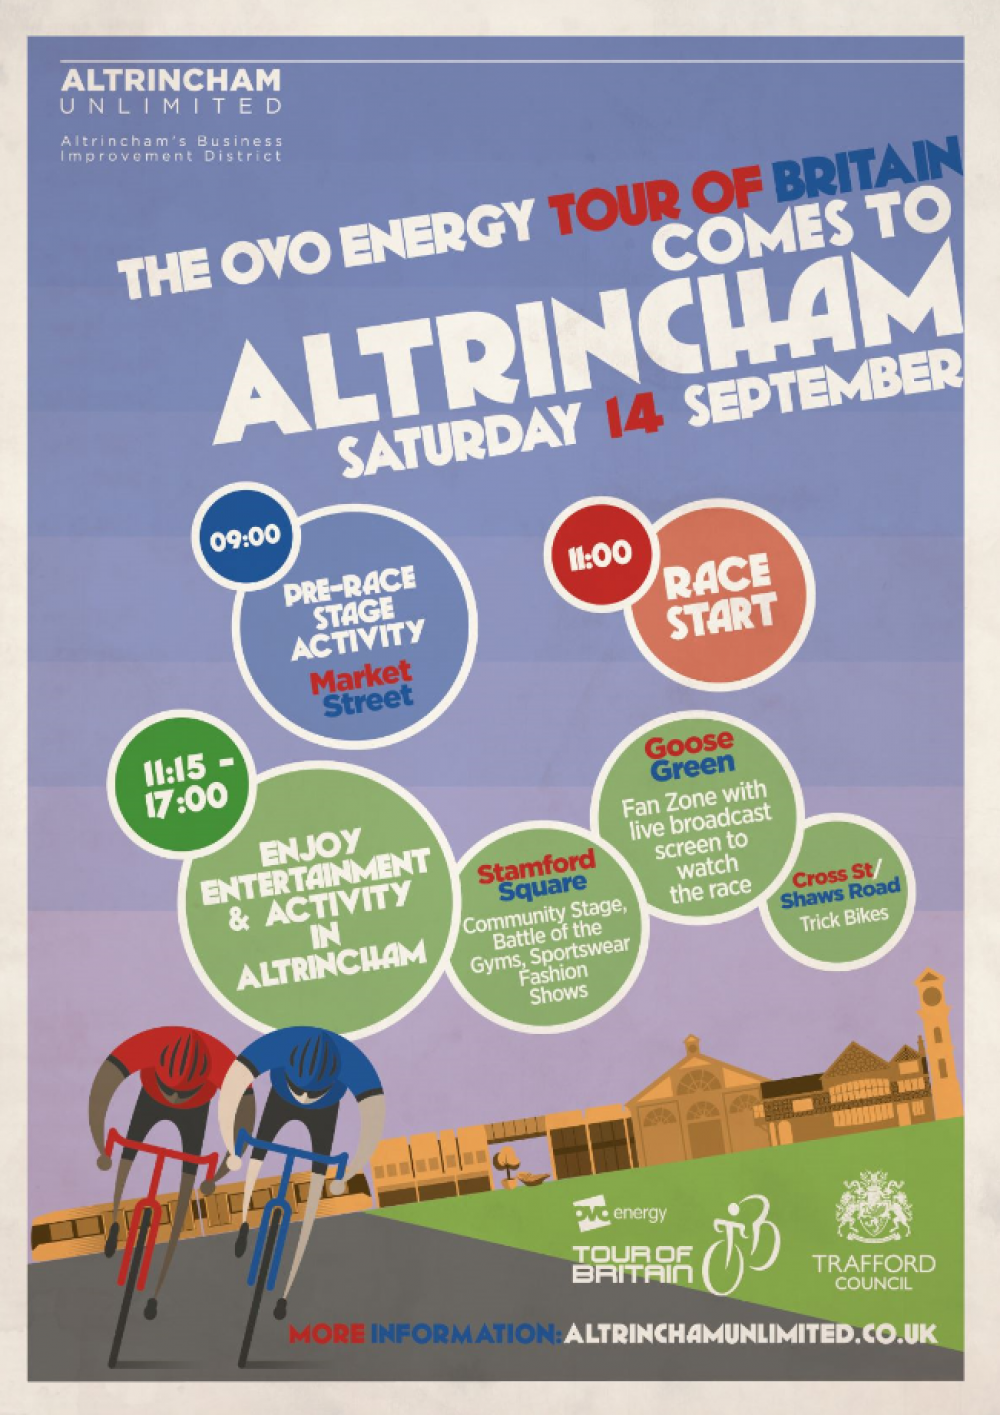 What's On when the OVO Energy Tour of Britain comes to Altrincham